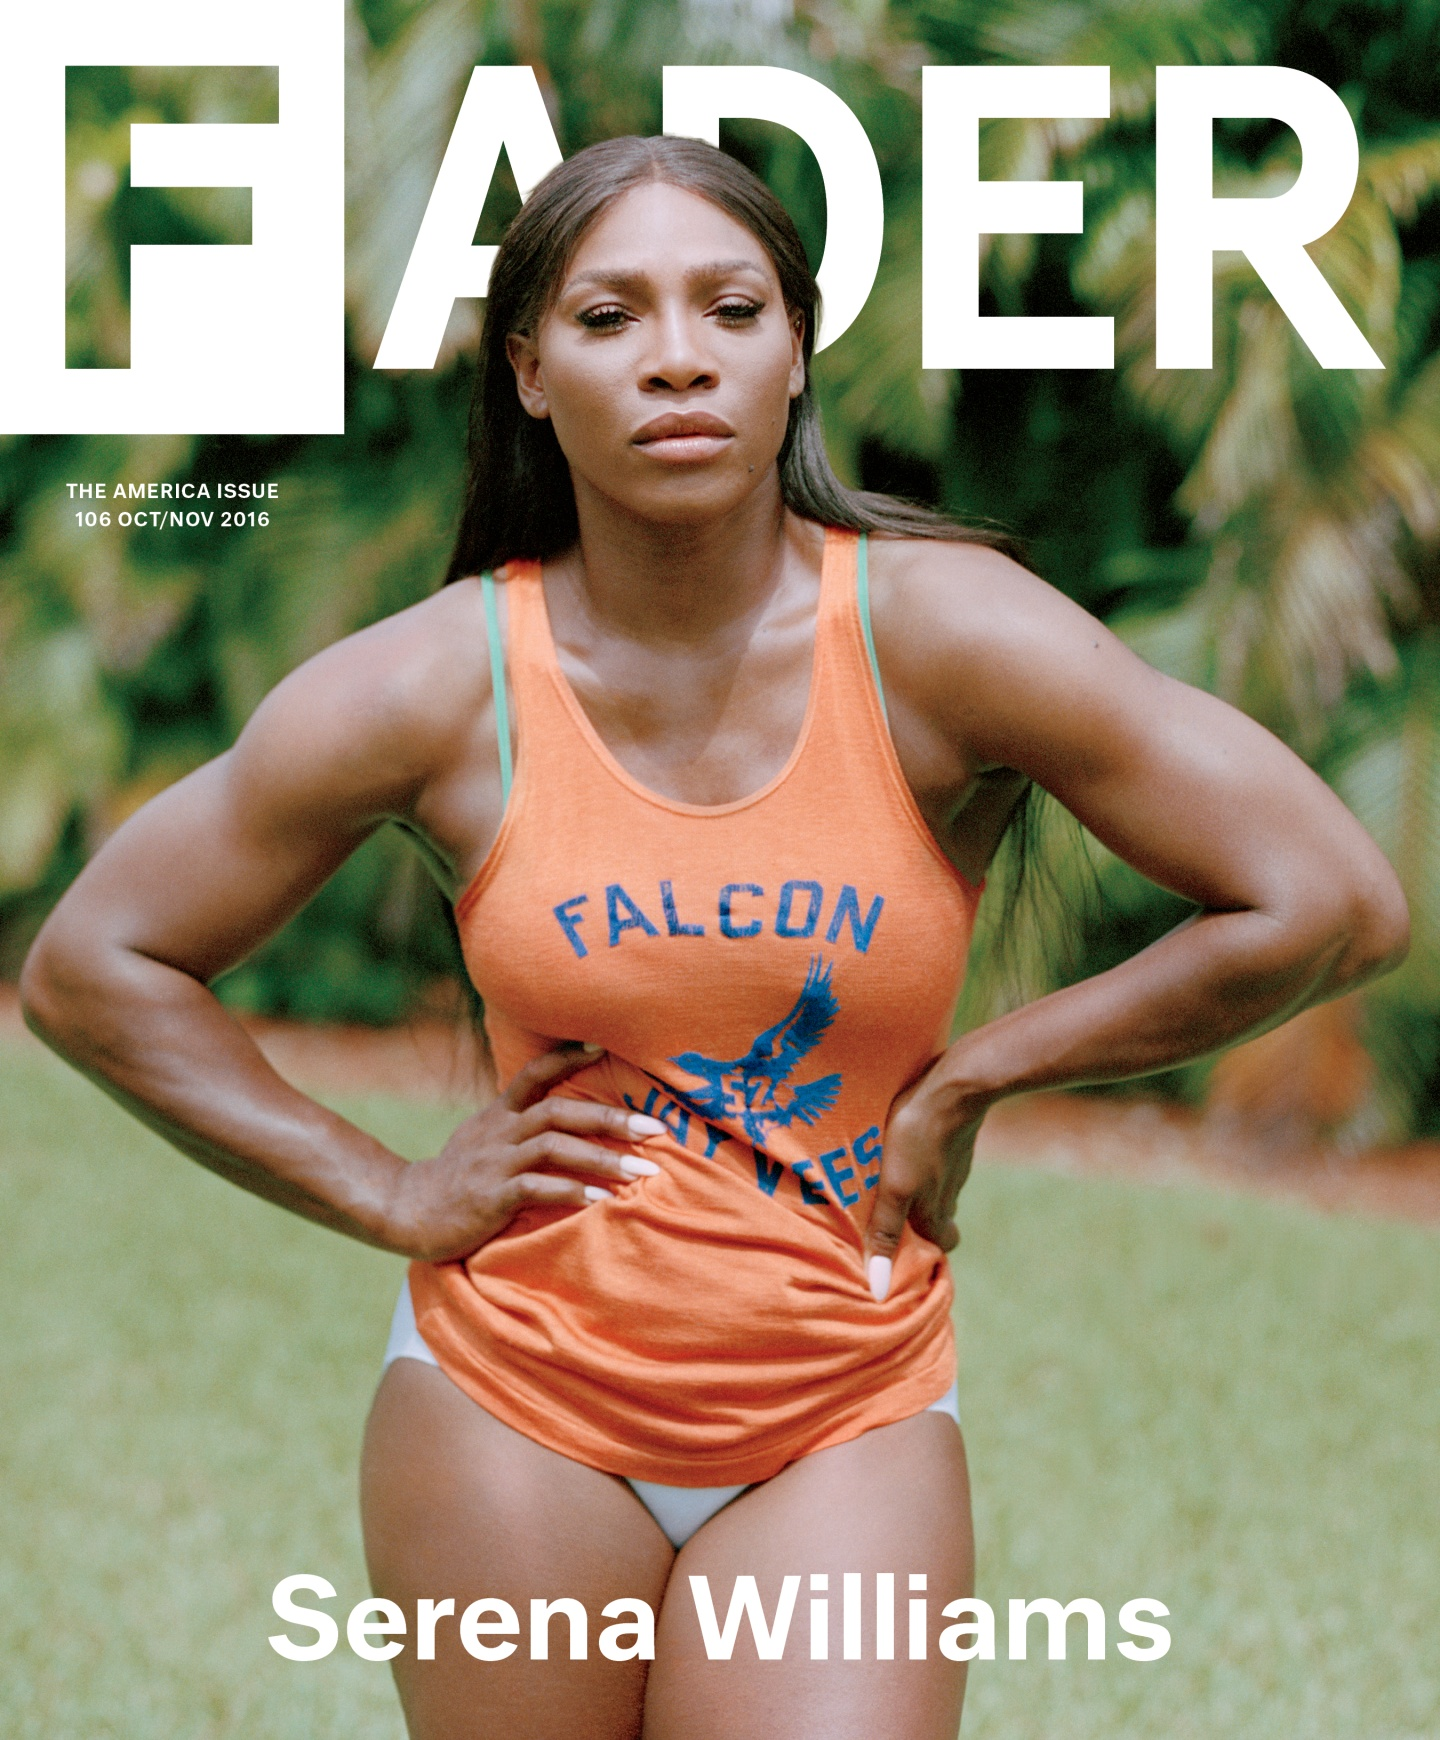 11 Things We Learned About Serena Williams From Her FADER Cover Story